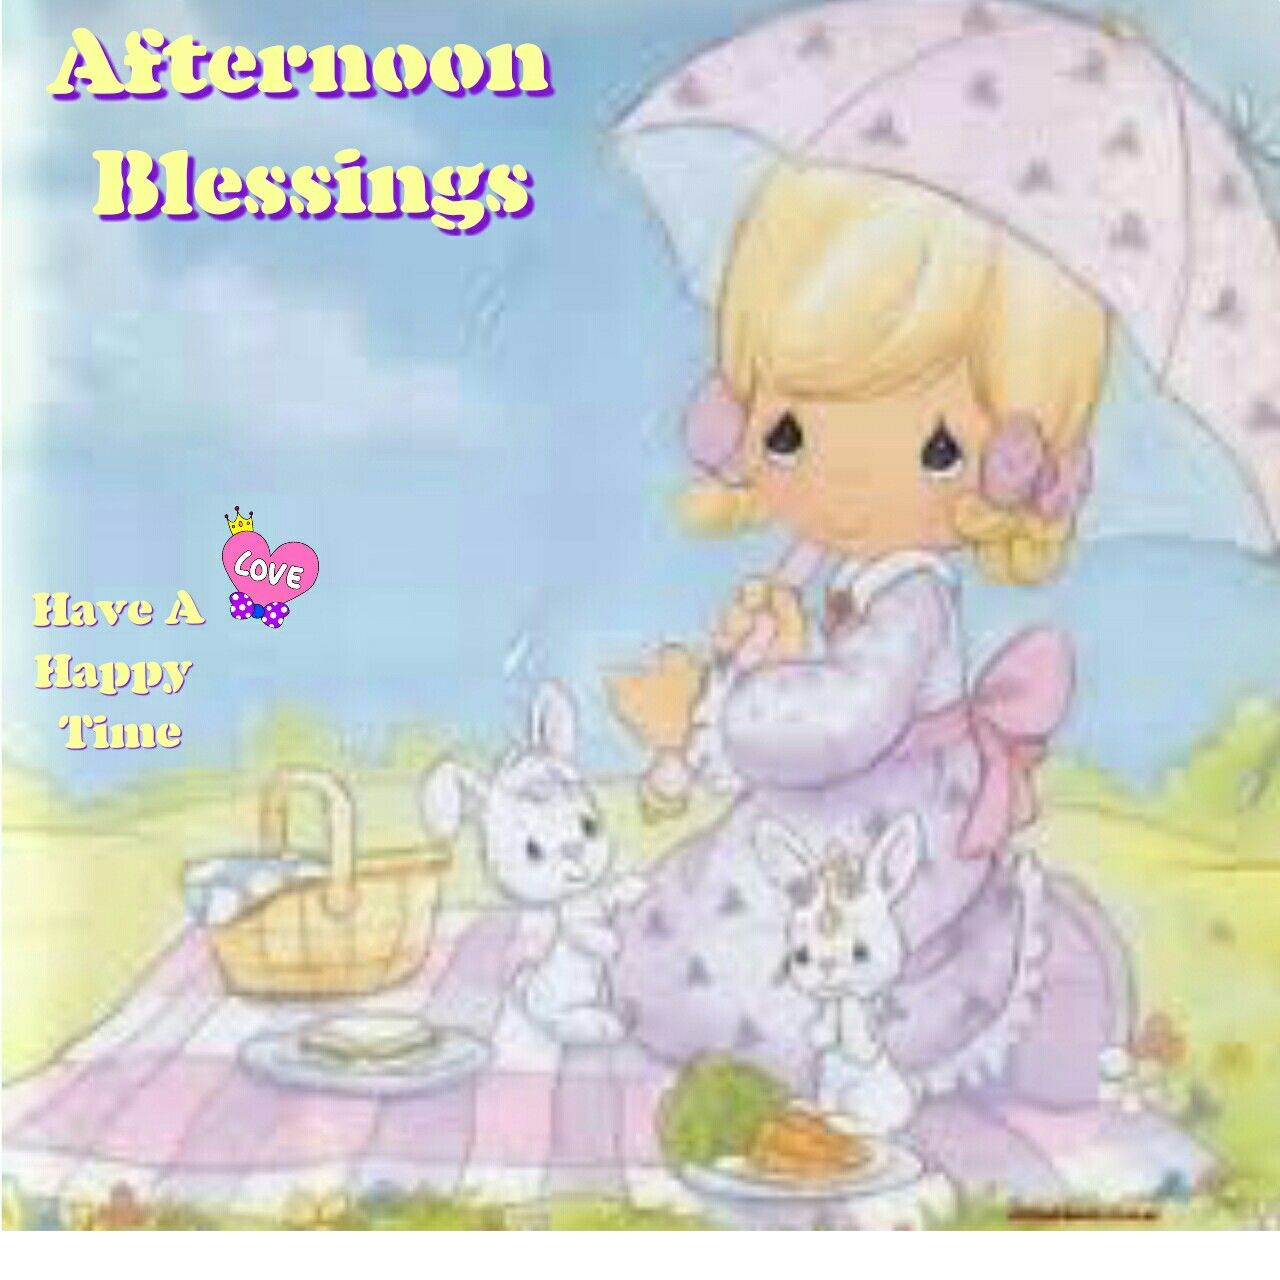 Afternoon Blessings Pictures, Photos, And Images For